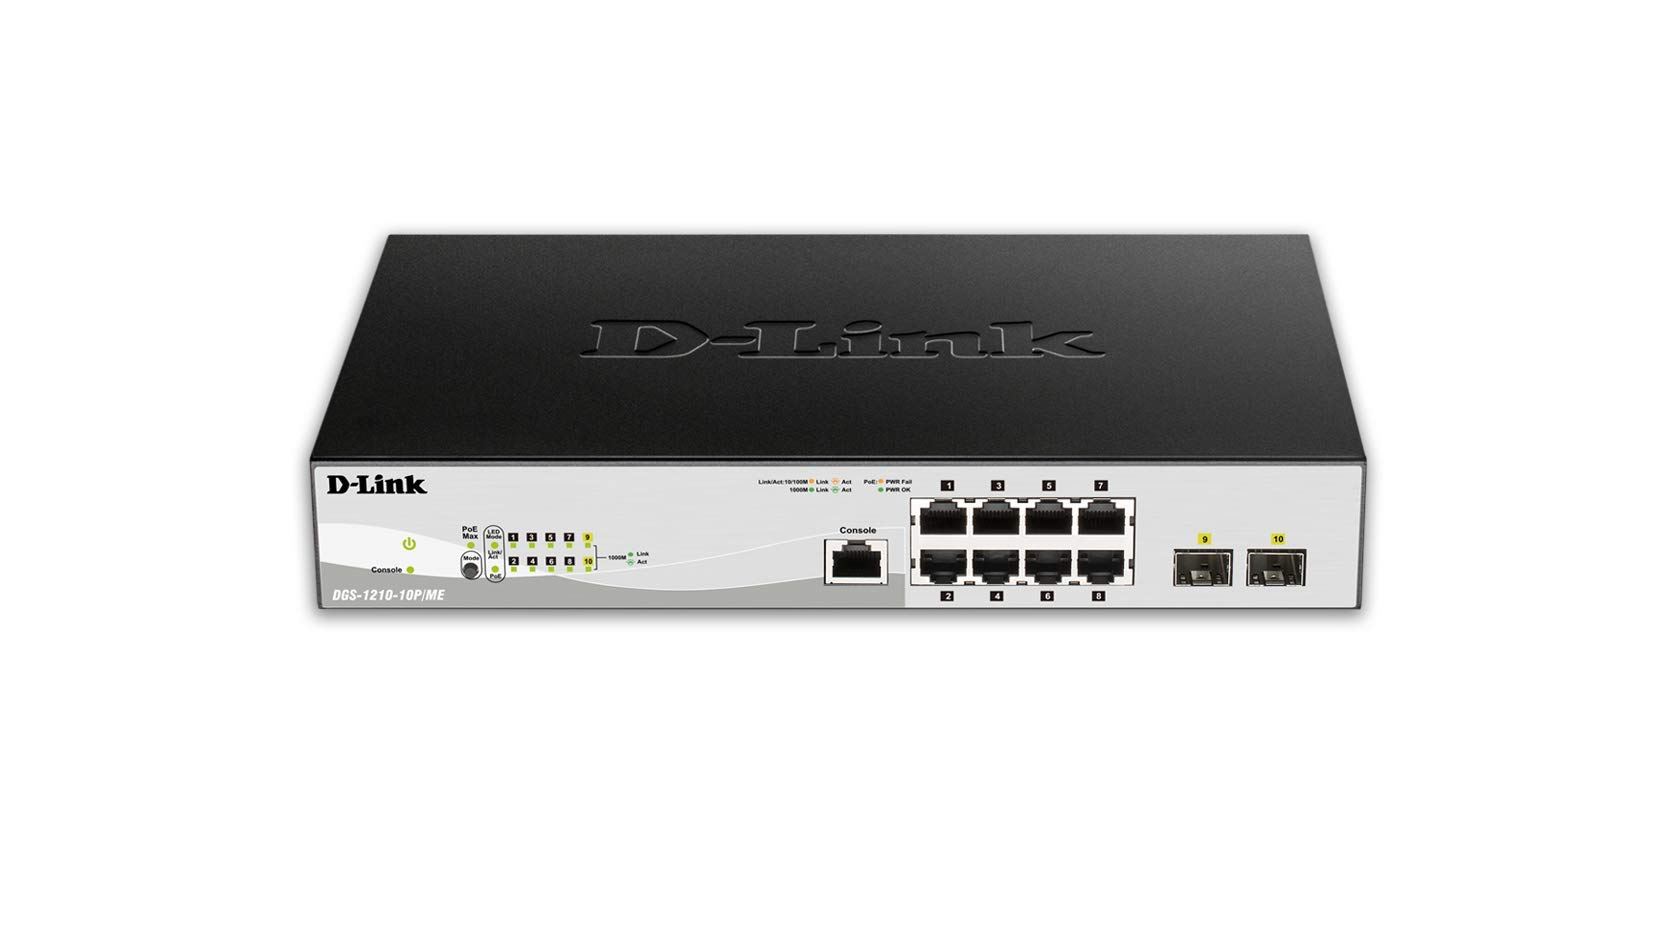 D-Link 10/100/1000BASE-T PoE + 2 1G SFP Ports L2 Management Switch by D-Link